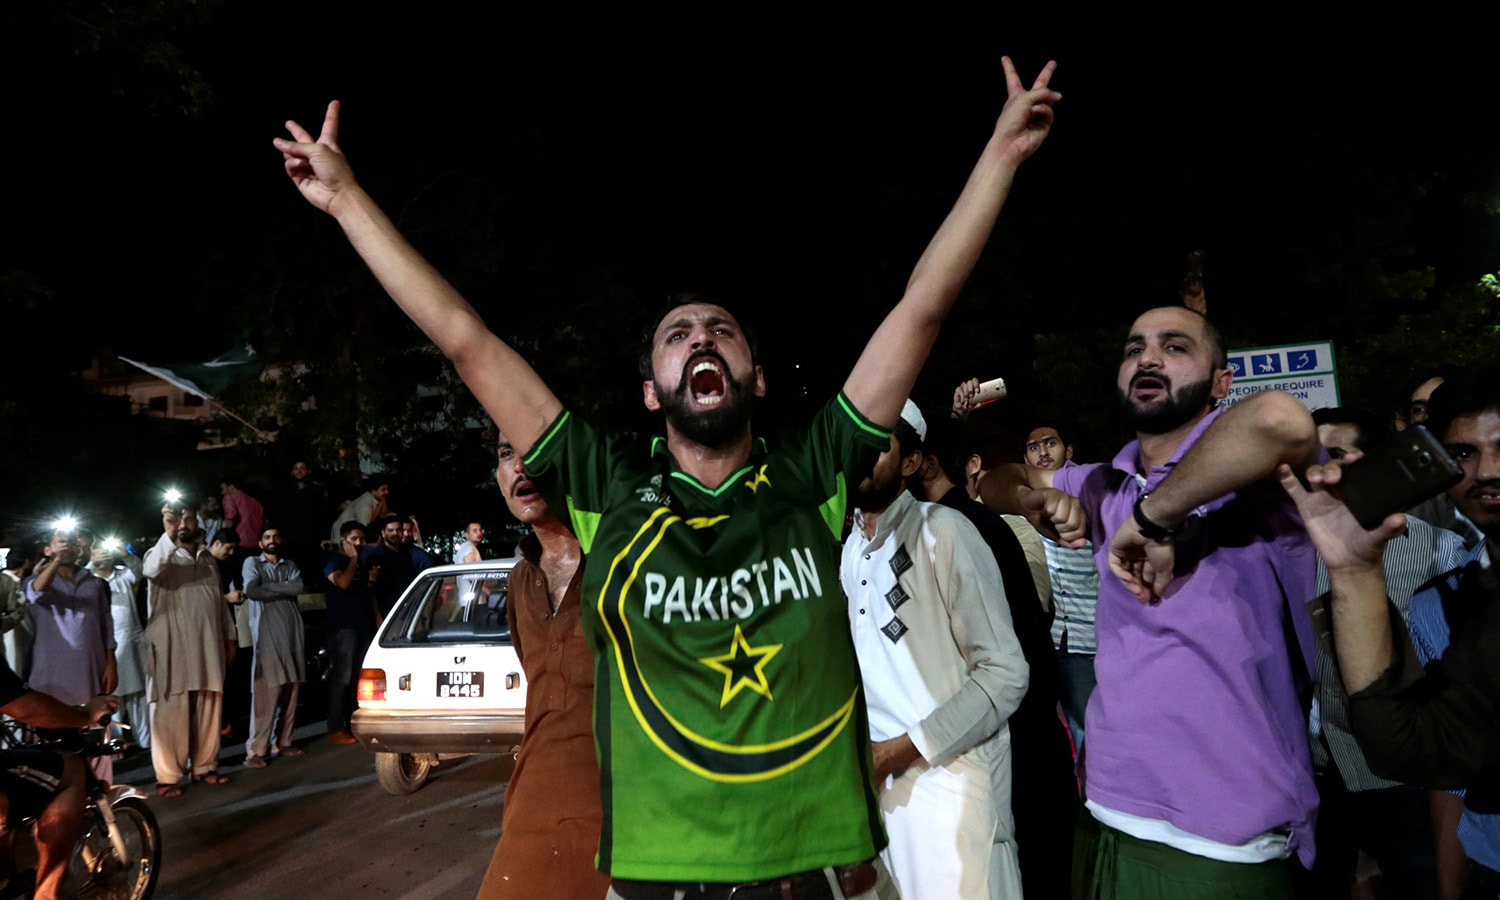 Celebrations everywhere as Pakistan wins Champions Trophy